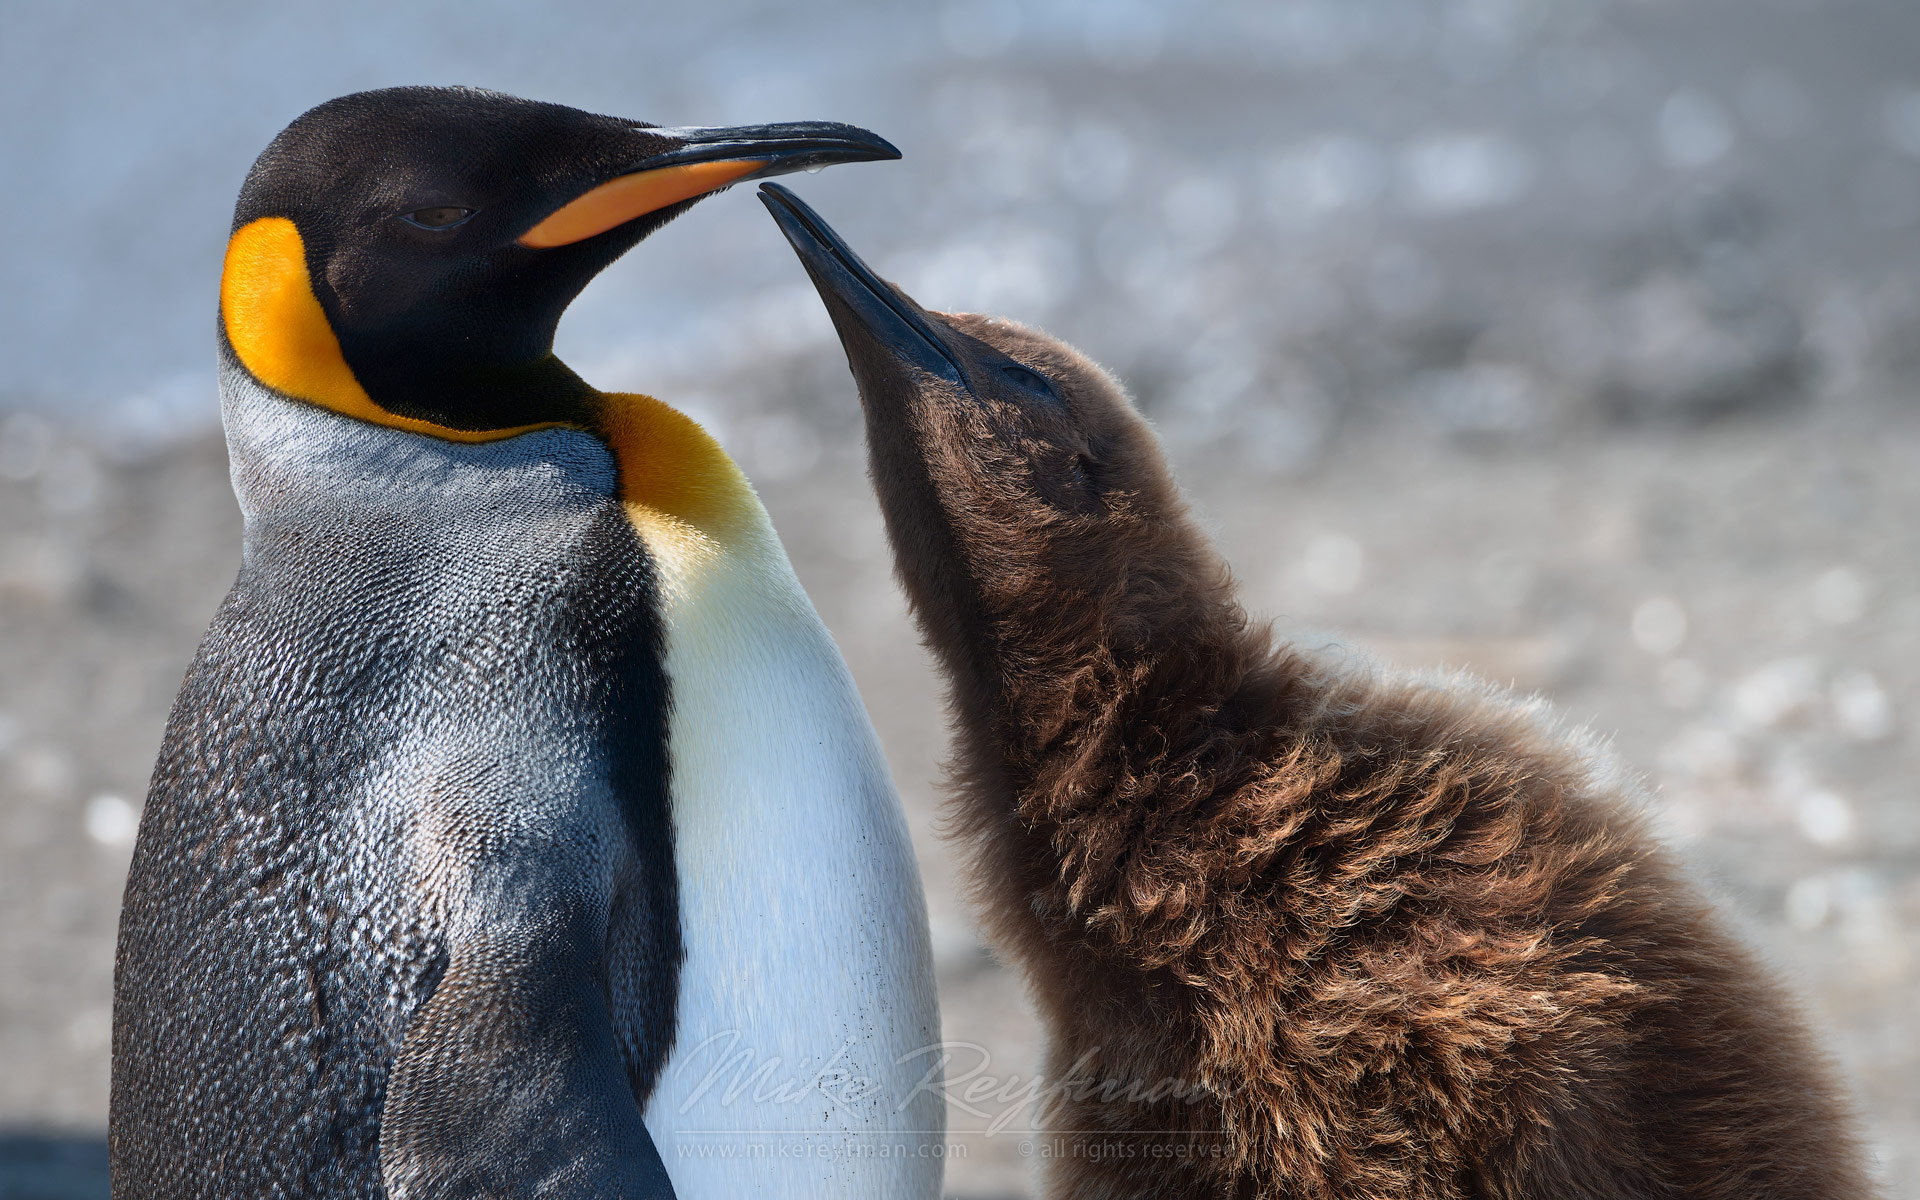 Adult King Penguin (Aptenodytes patagonicus) and chick. King Penguin Creche. Salisbury Plain, South Georgia, Sub-Antarctic - King-Penguin-Chicks-In-Creche-South-Georgia-Sub-Antarctic - Mike Reyfman Photography